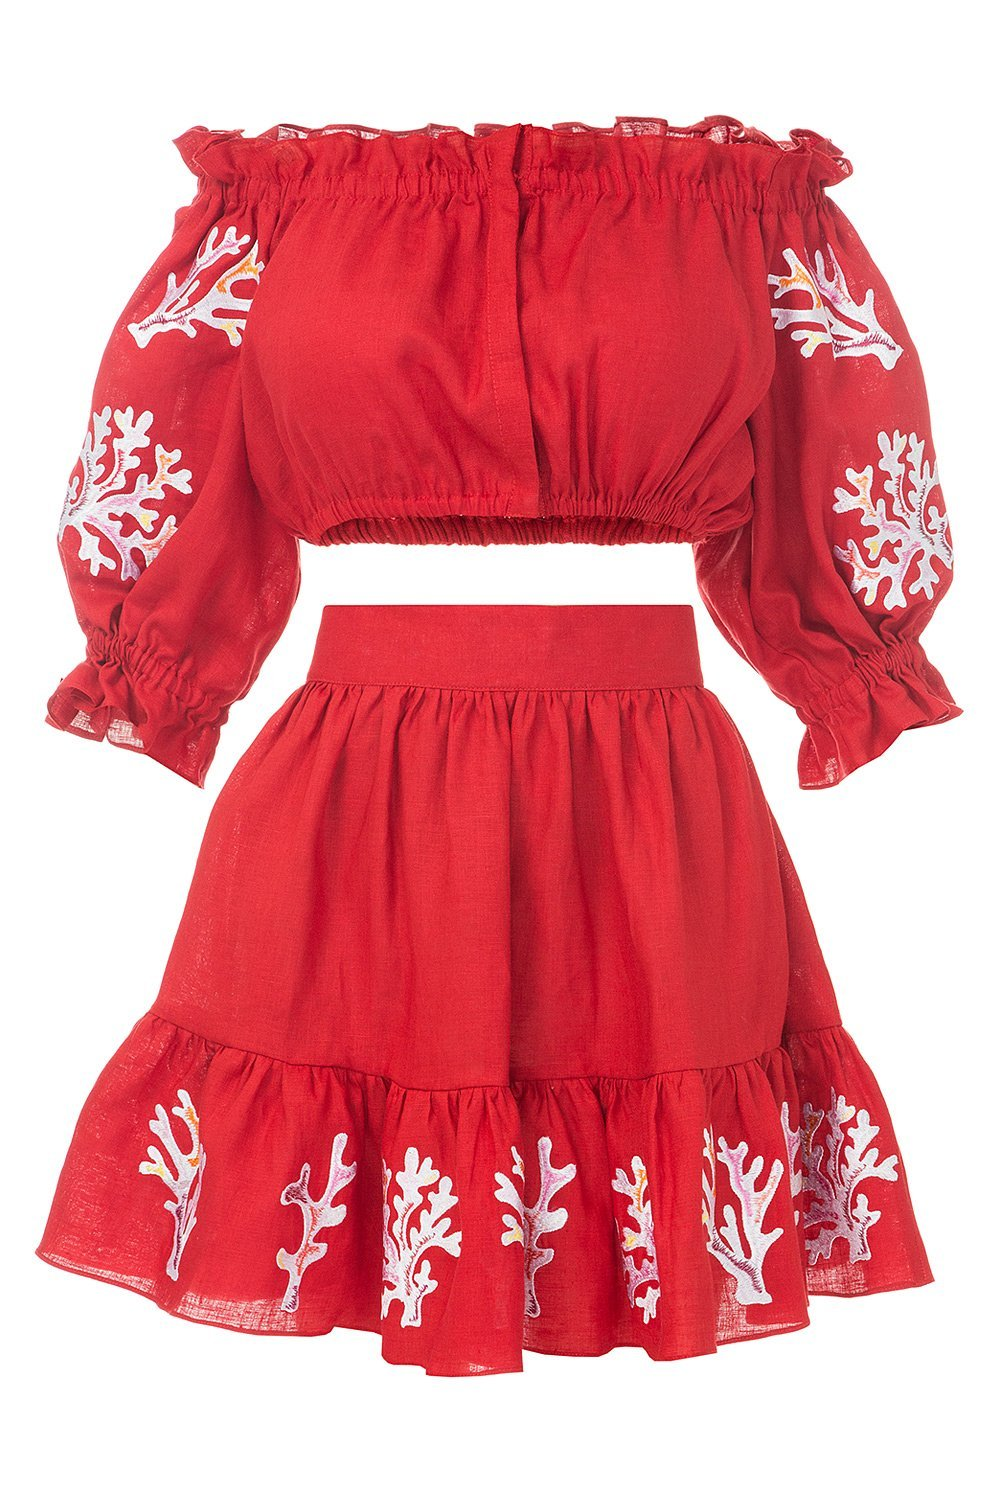 Bora Bora Red Mini Suit